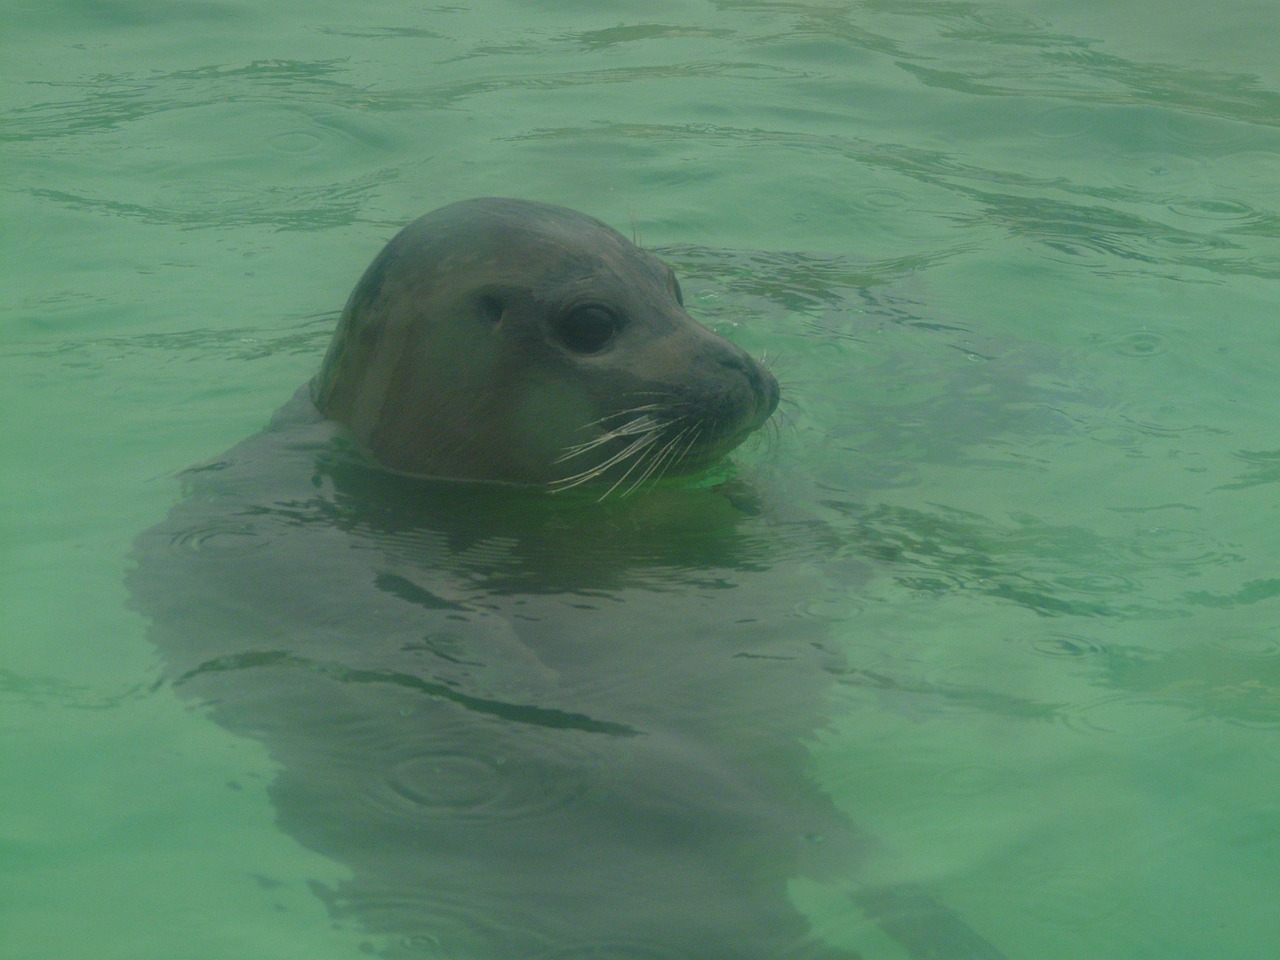 seal phoca vitulina robbe free photo